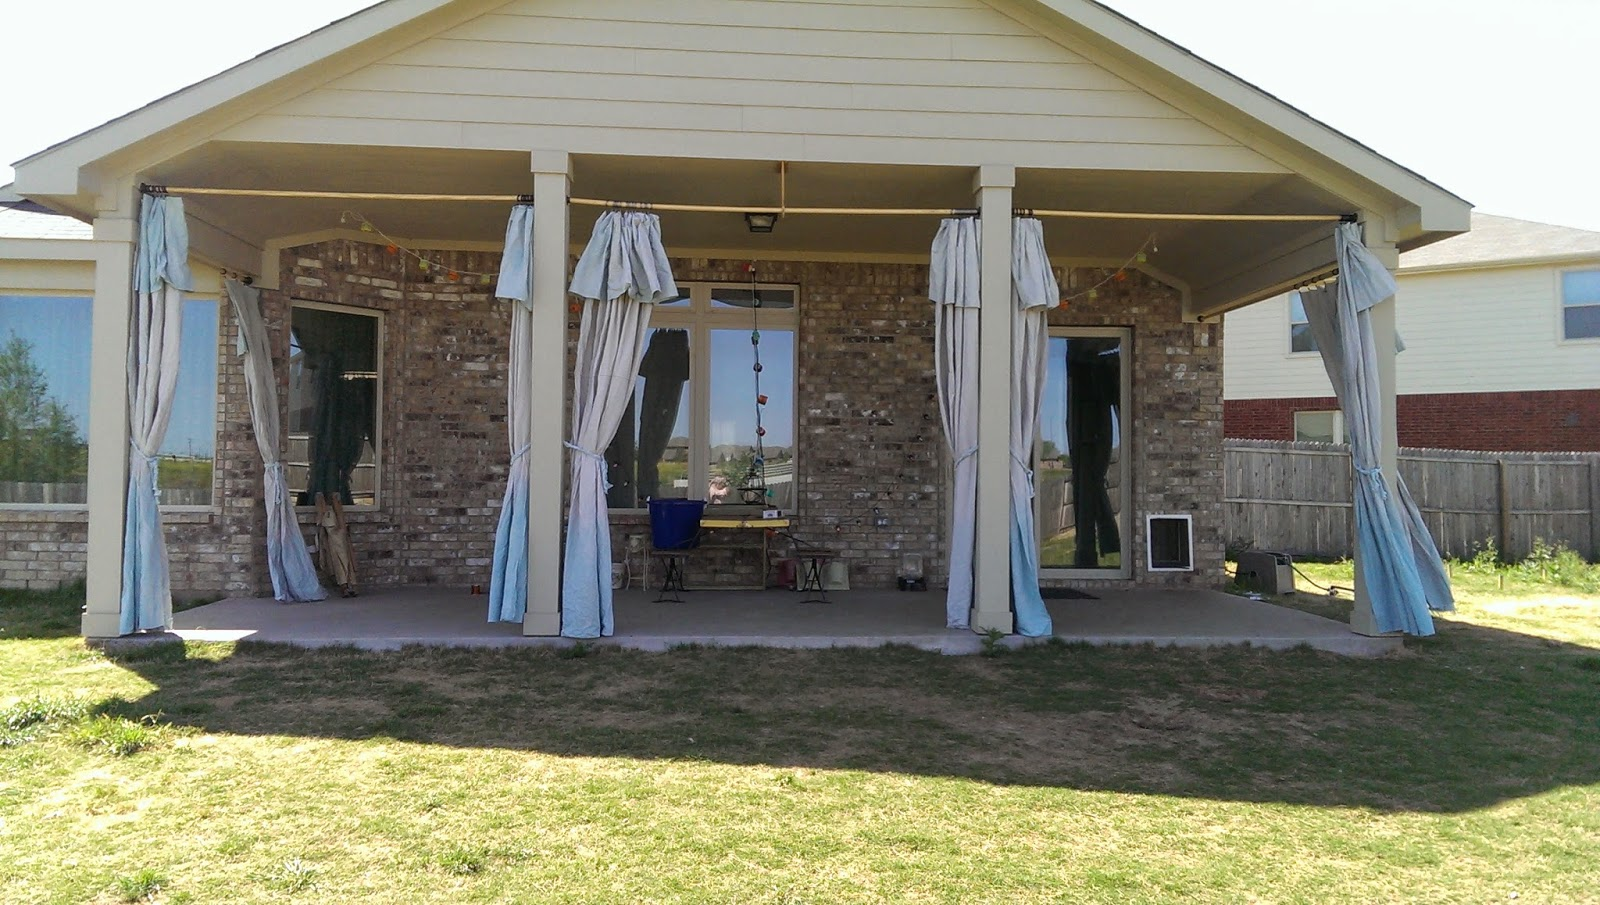 Drop cloth curtains dyed - I Have Been Wanting To Do This Project For Some Time Now I Recently Saw A Blog Posting On Making Curtains Out Of Drop Clothes And I Wanted To Put My Own